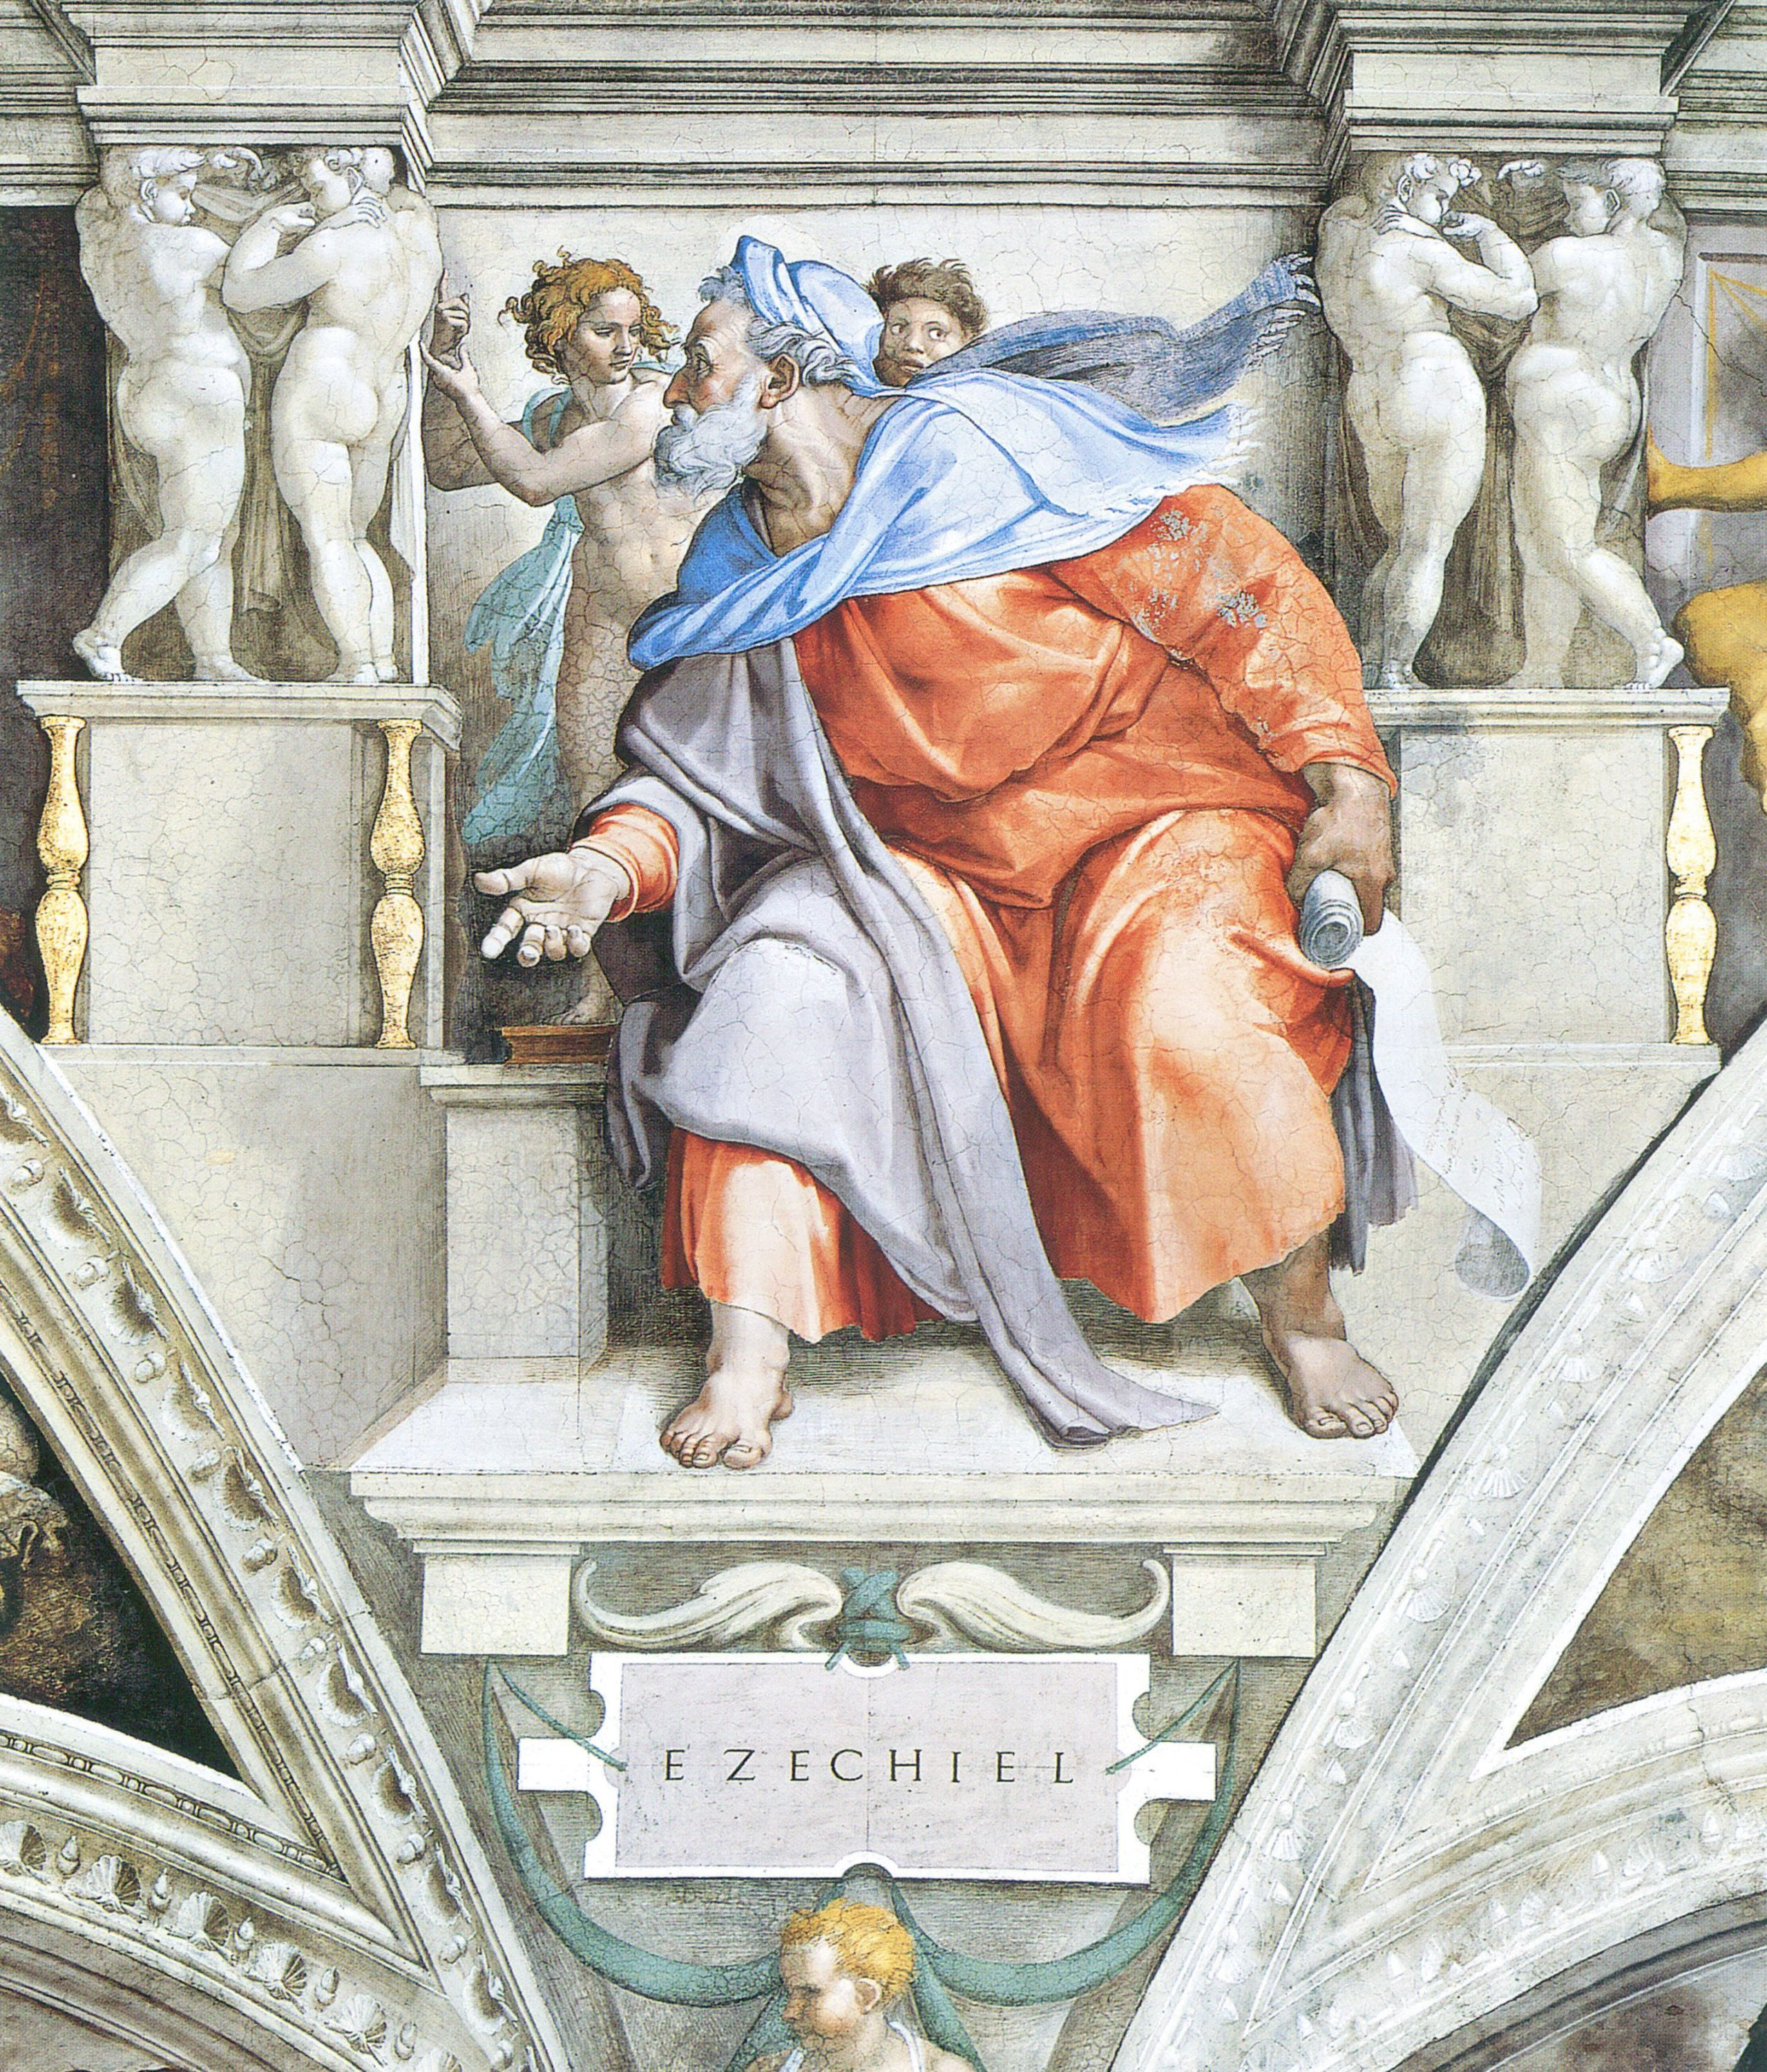 an analysis of the sistine chapel ceiling by michelangelo buonarroti Michelangelo buonarroti, ceiling of the sistine chapel bay 4, the fall and  on  the left side is masaccio's interpretation of the expulsion from the garden (pp.